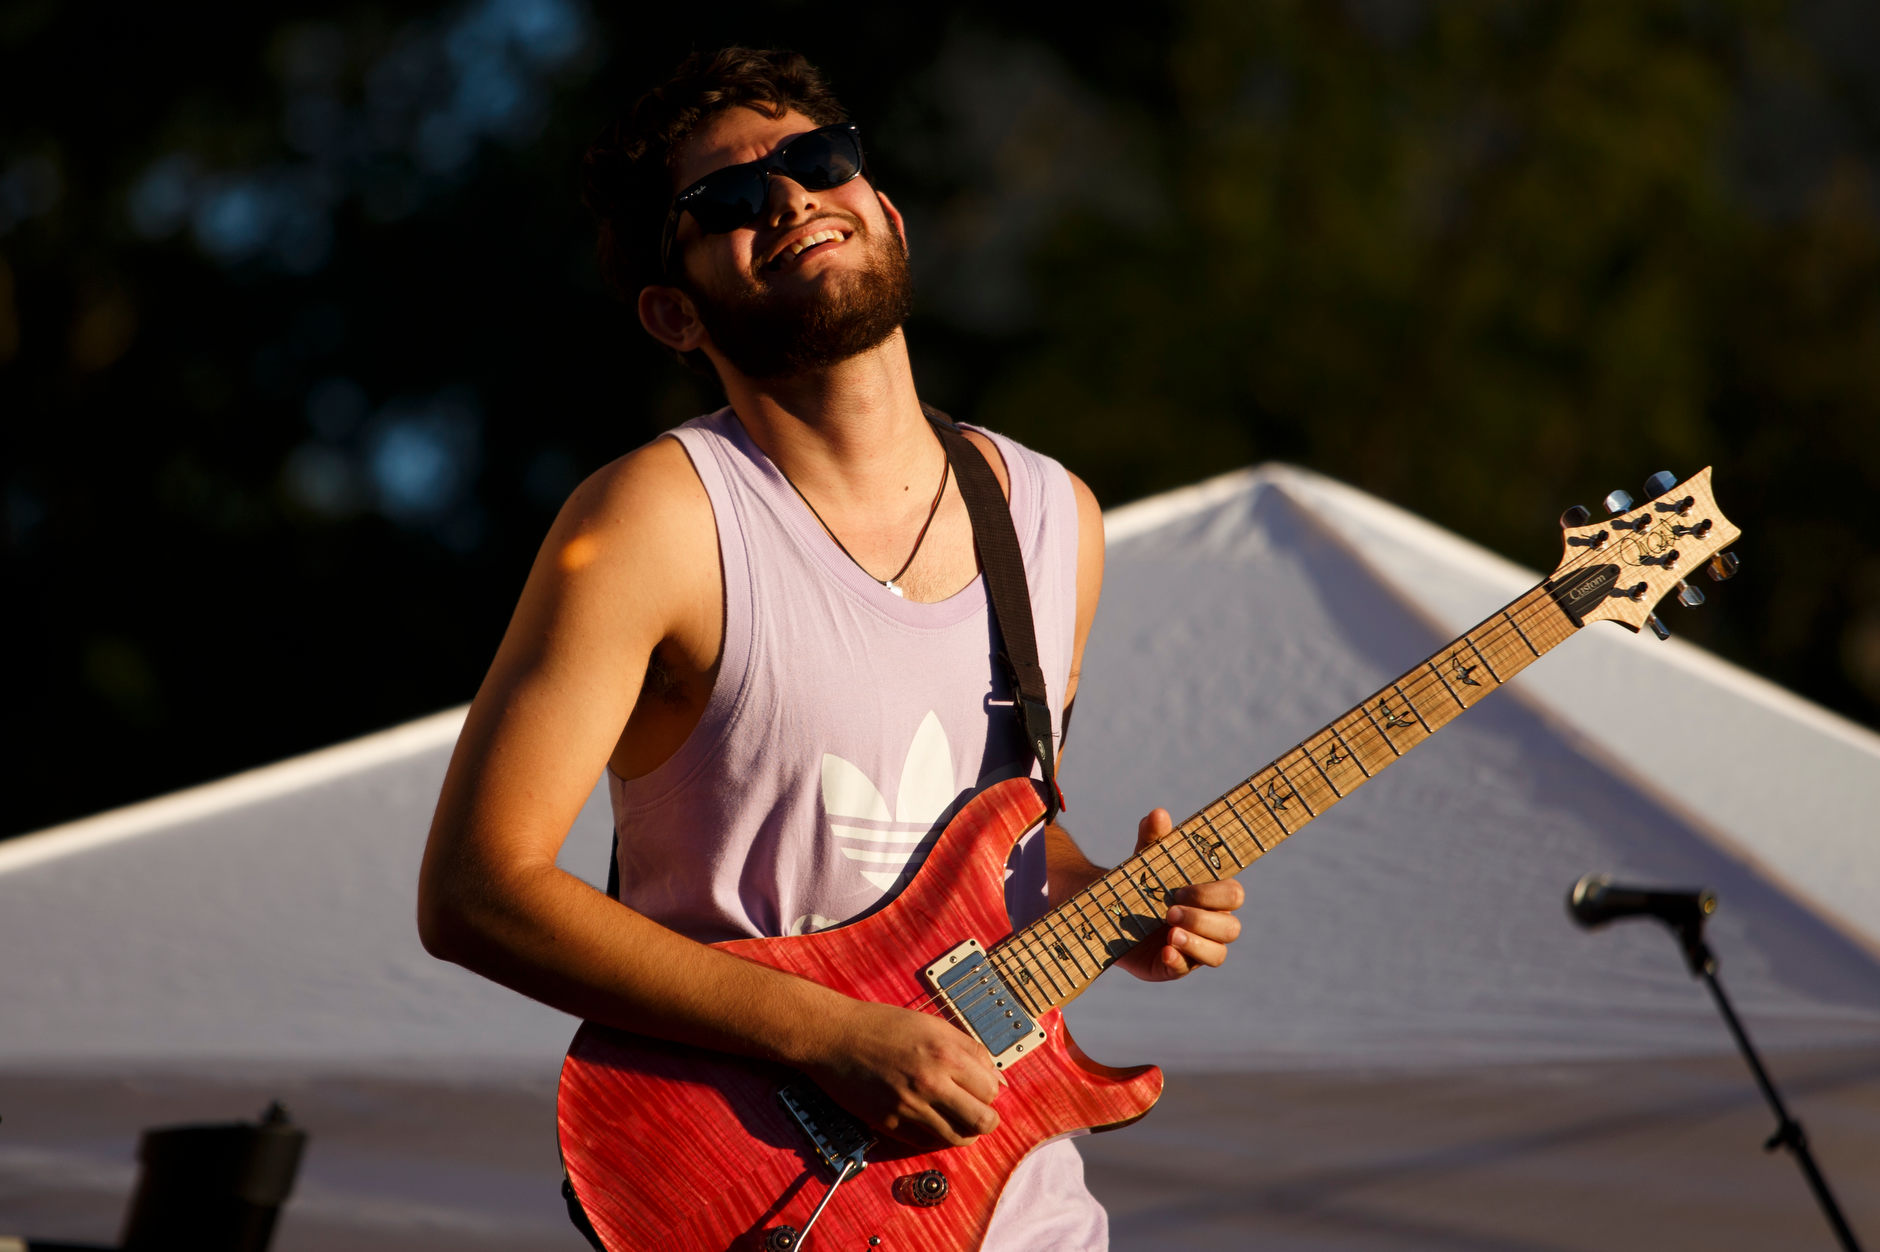 Alex Goldblatt plays guitar during a performance with Royalty - Prince Tribute Band during the First Thursdays Festival on the Arts Plaza at IU Bloomington on Thursday, Sept. 5, 2019. (James Brosher/Indiana University)